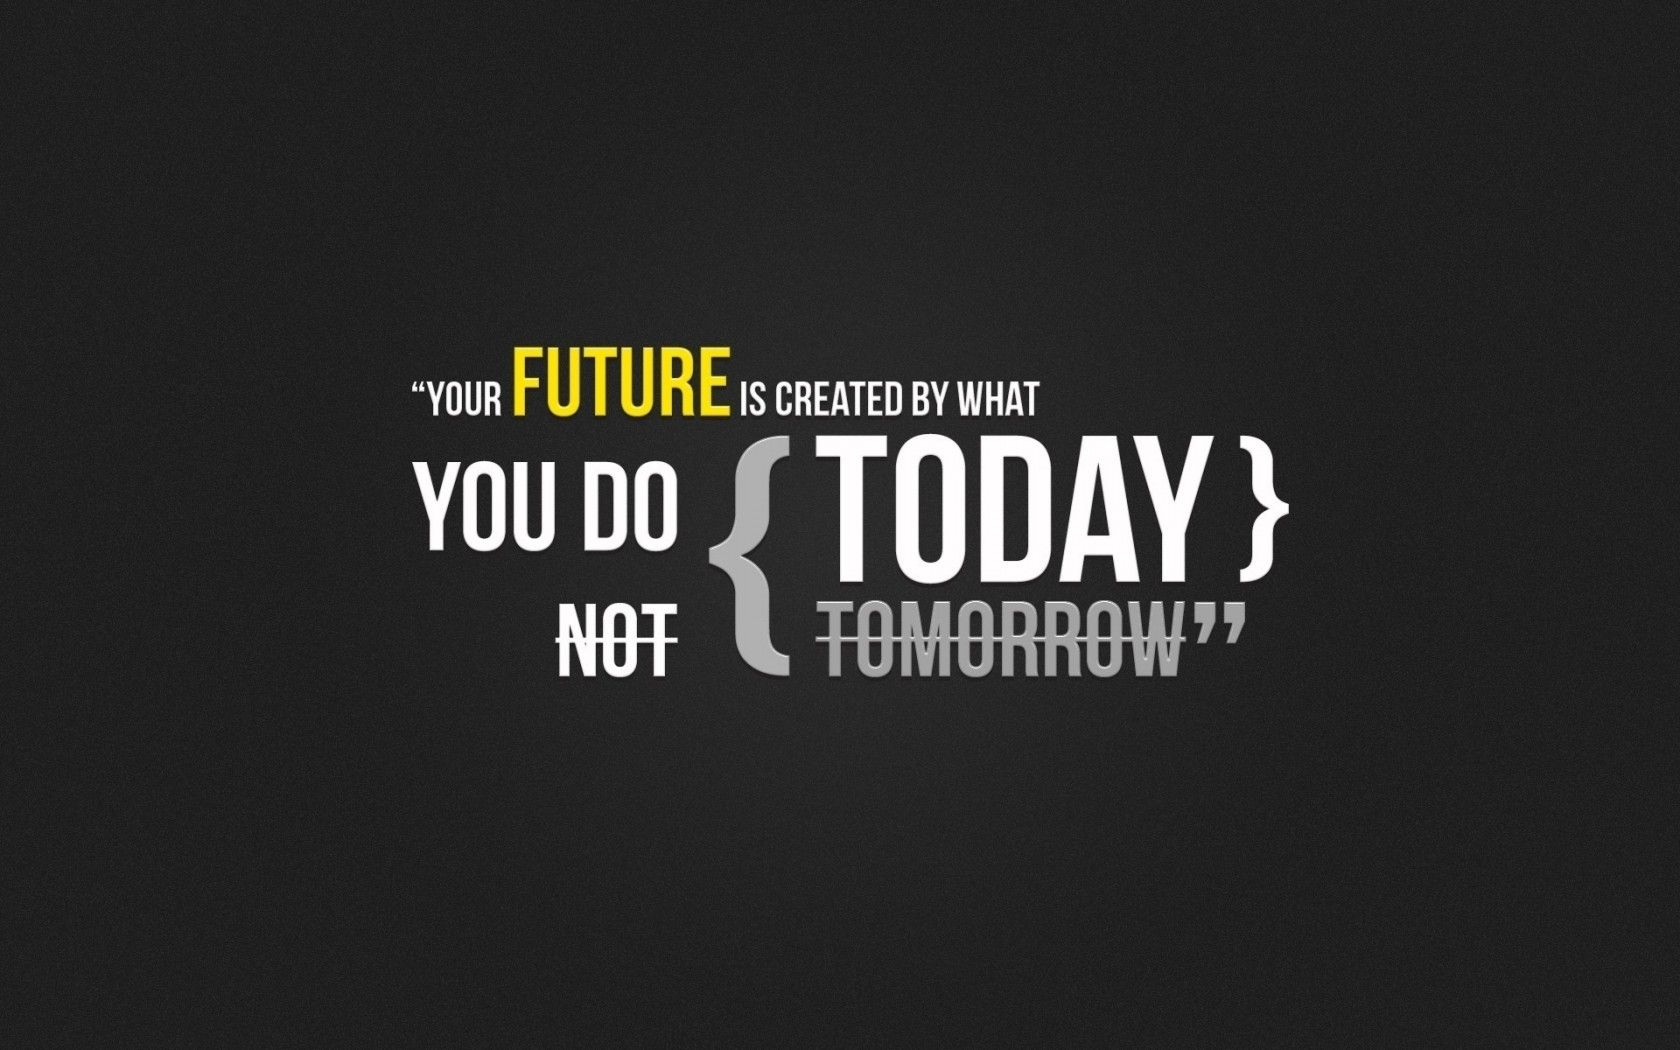 Tomorrow Quotes Wallpaper Hd Computer Backgrounds With Quotes Best Quotes Pictures